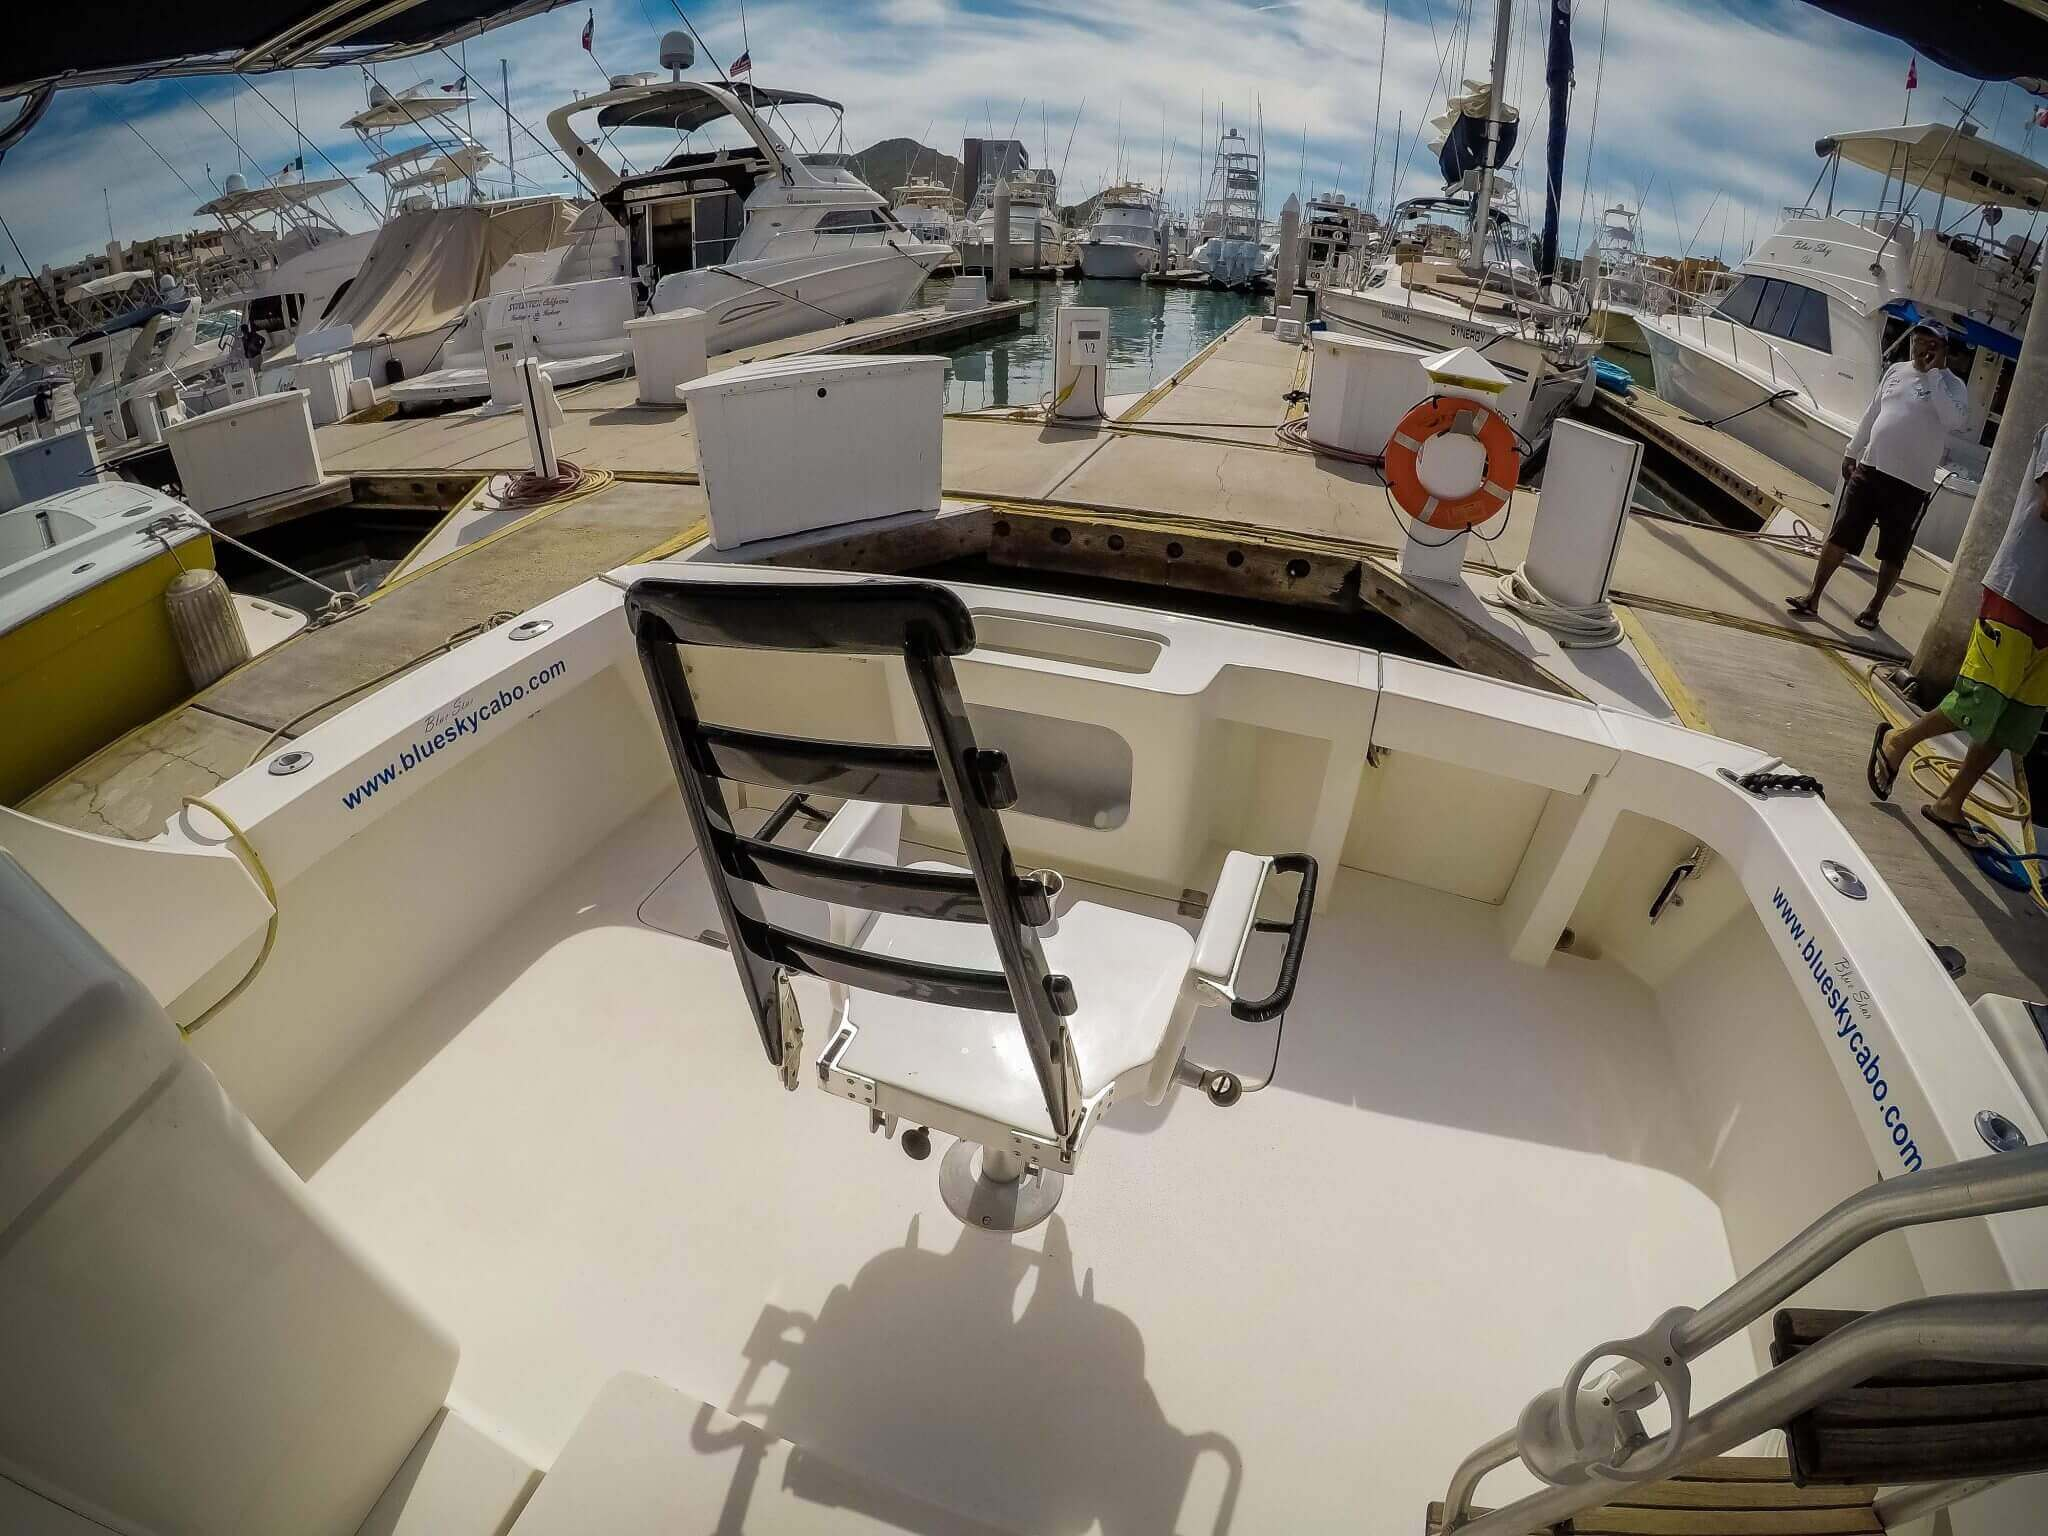 Blue Star 32 Foot Luhrs